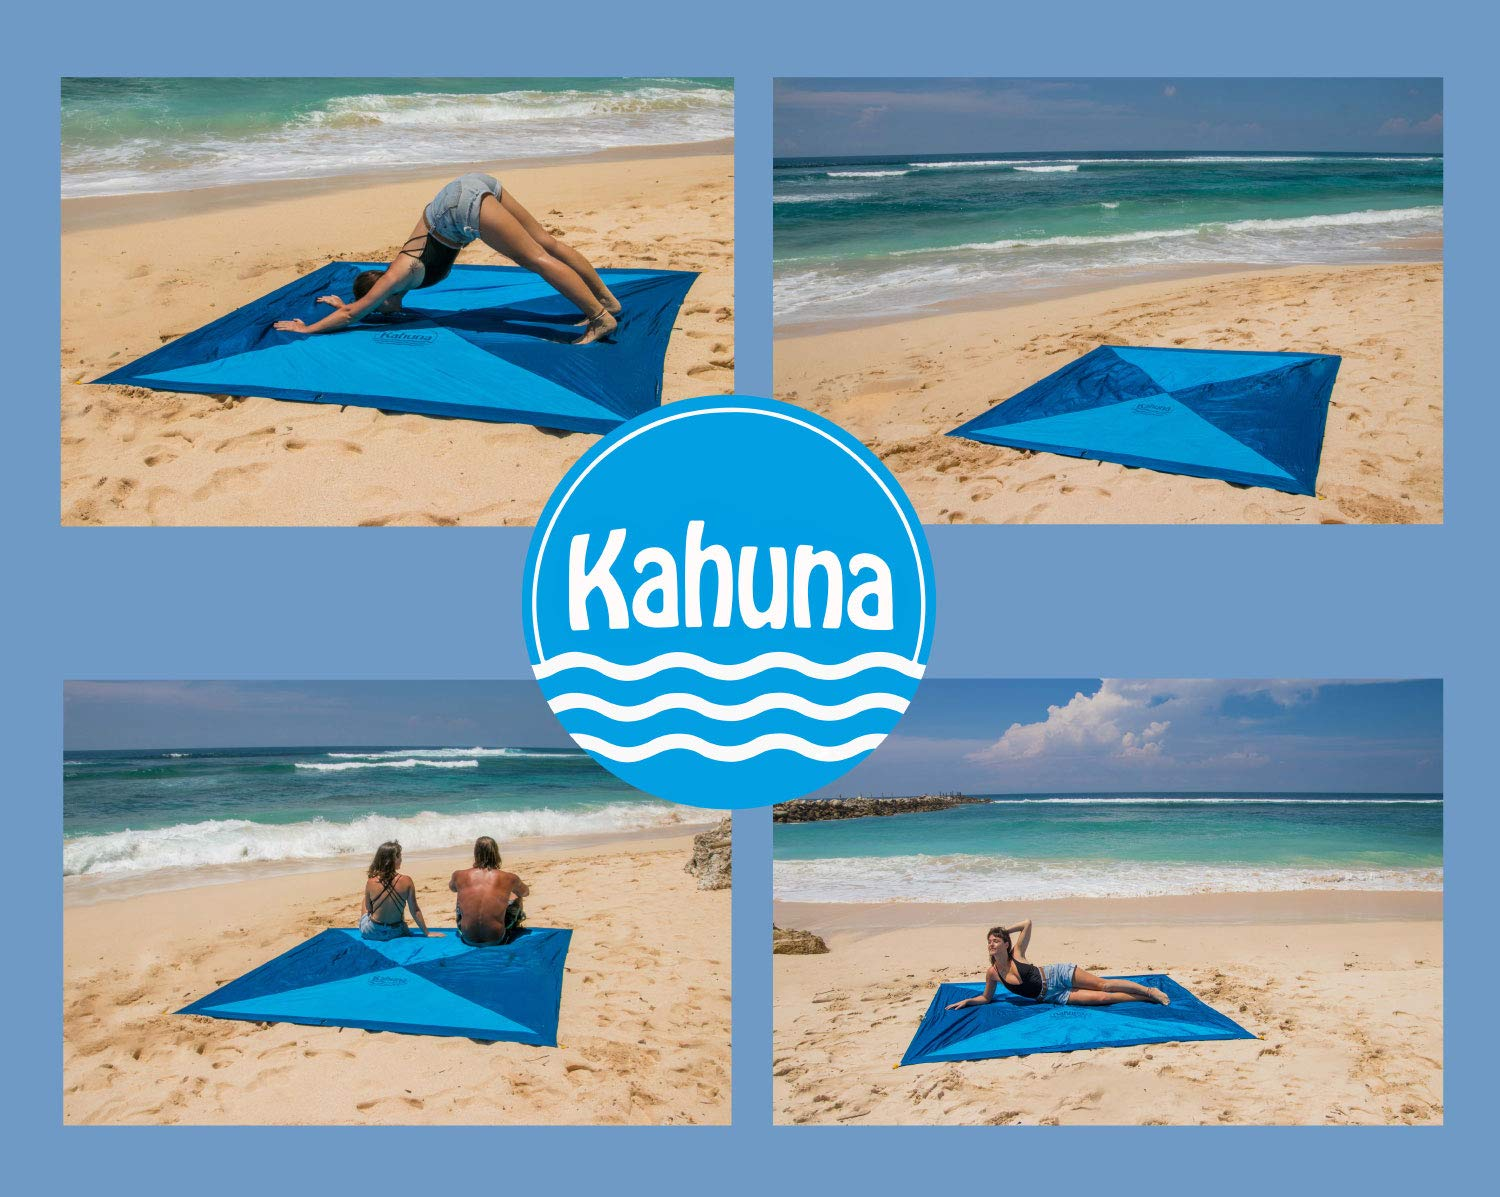 Amazon.com: Kahuna Next Gen manta de playa de paracaídas ...